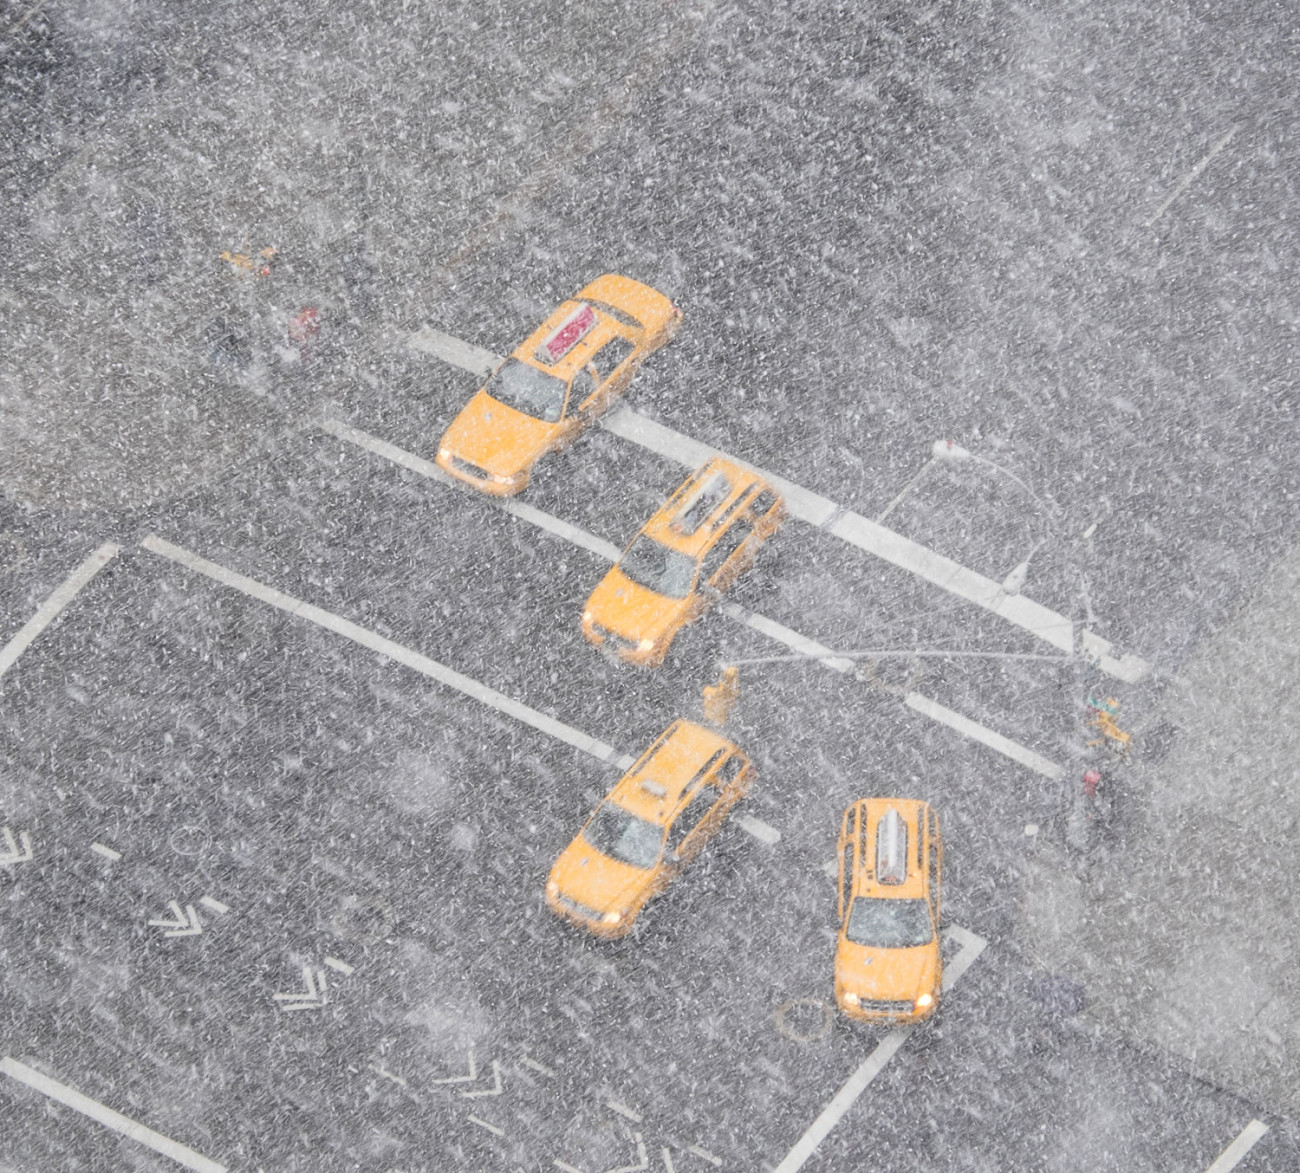 Four taxis in a snow storm, NY, 2015